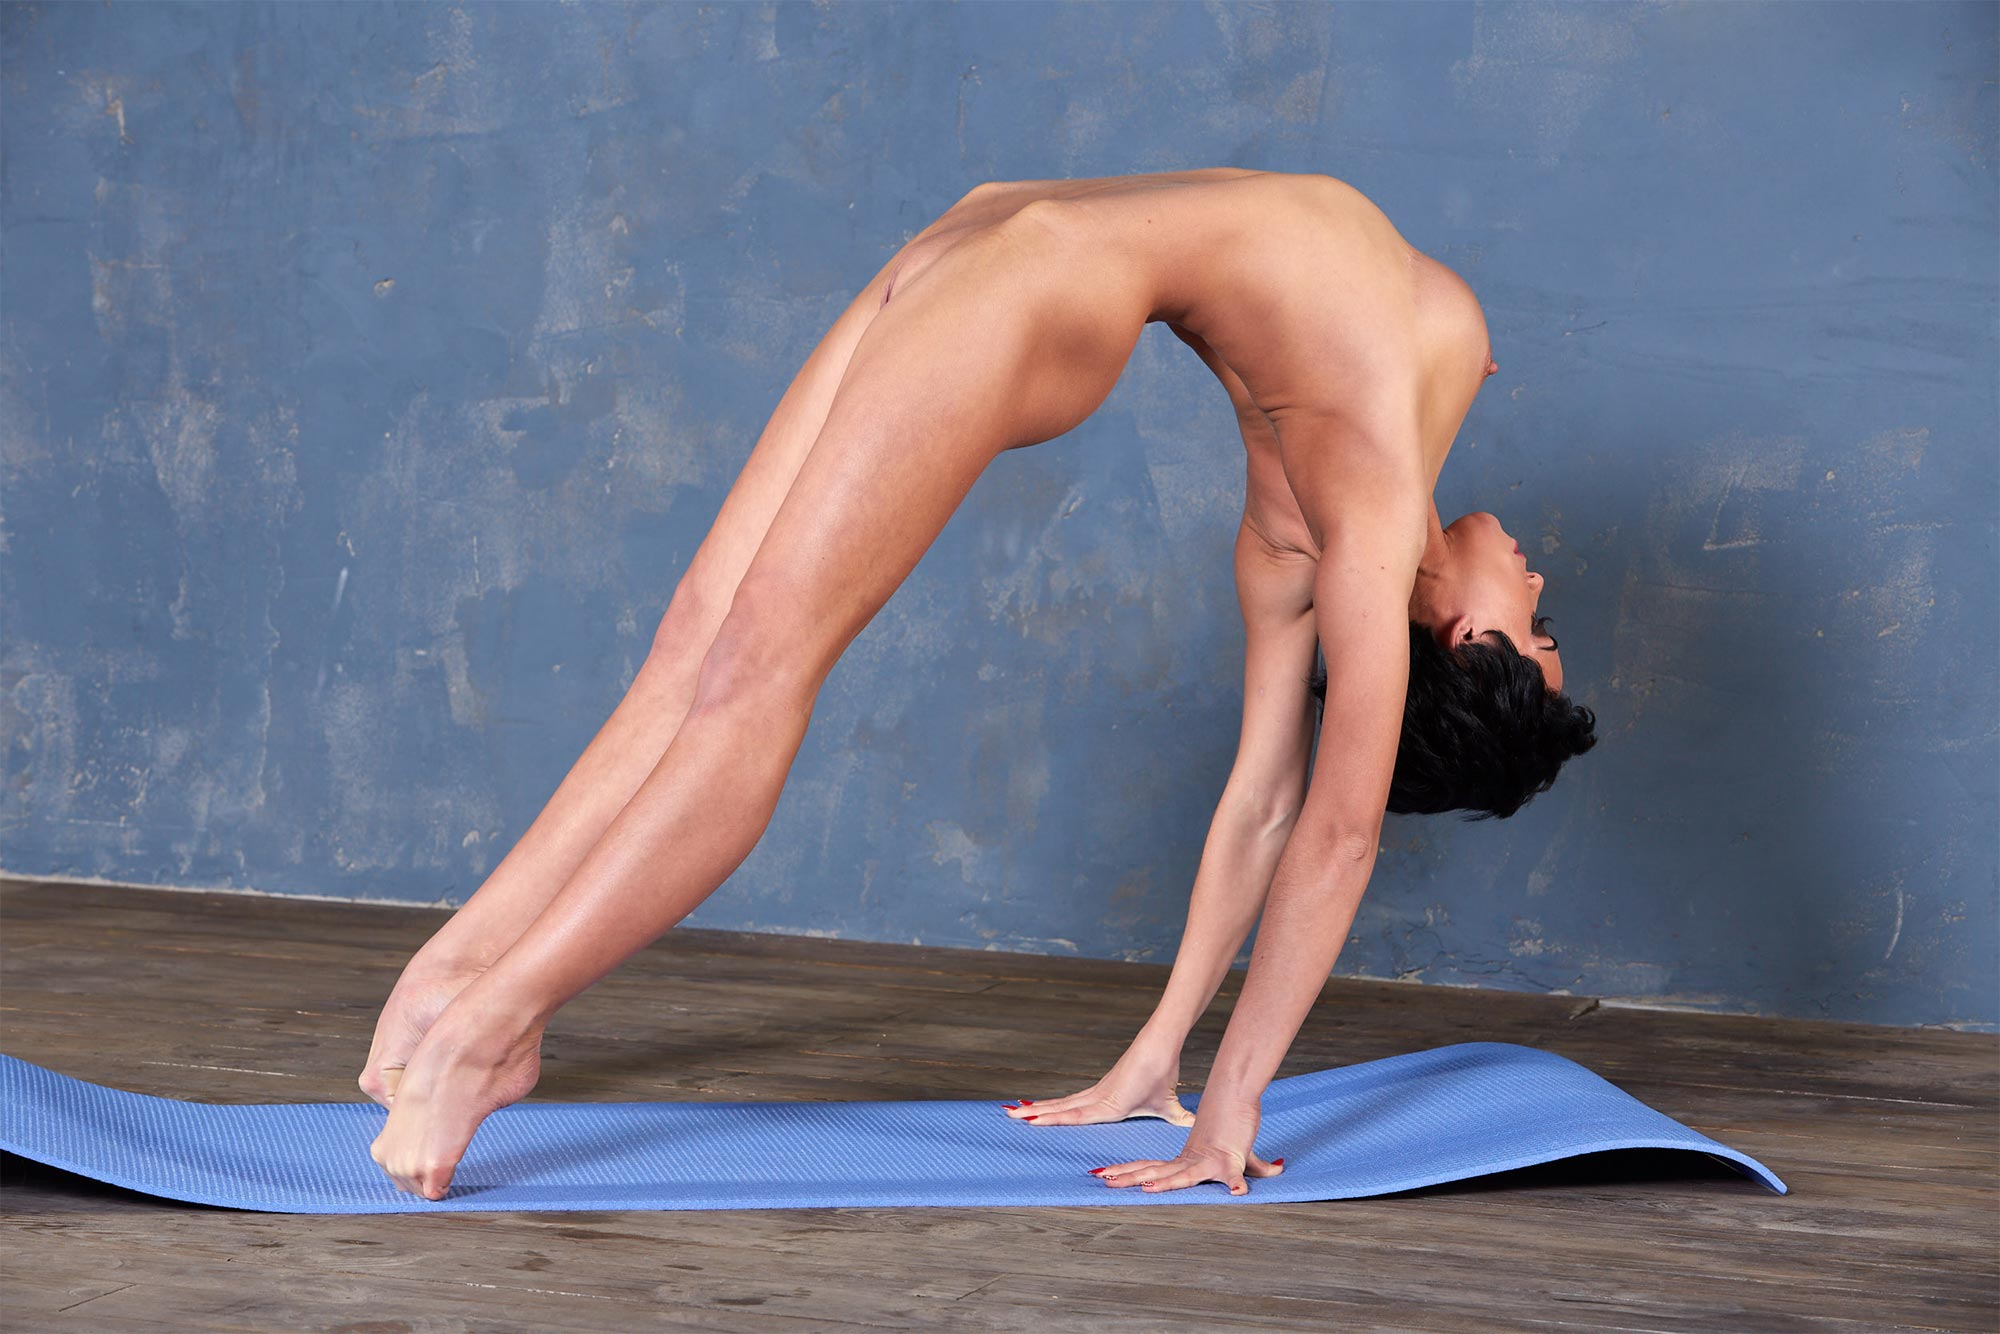 Nude yoga: naked yoga videos and photos with flexible girls